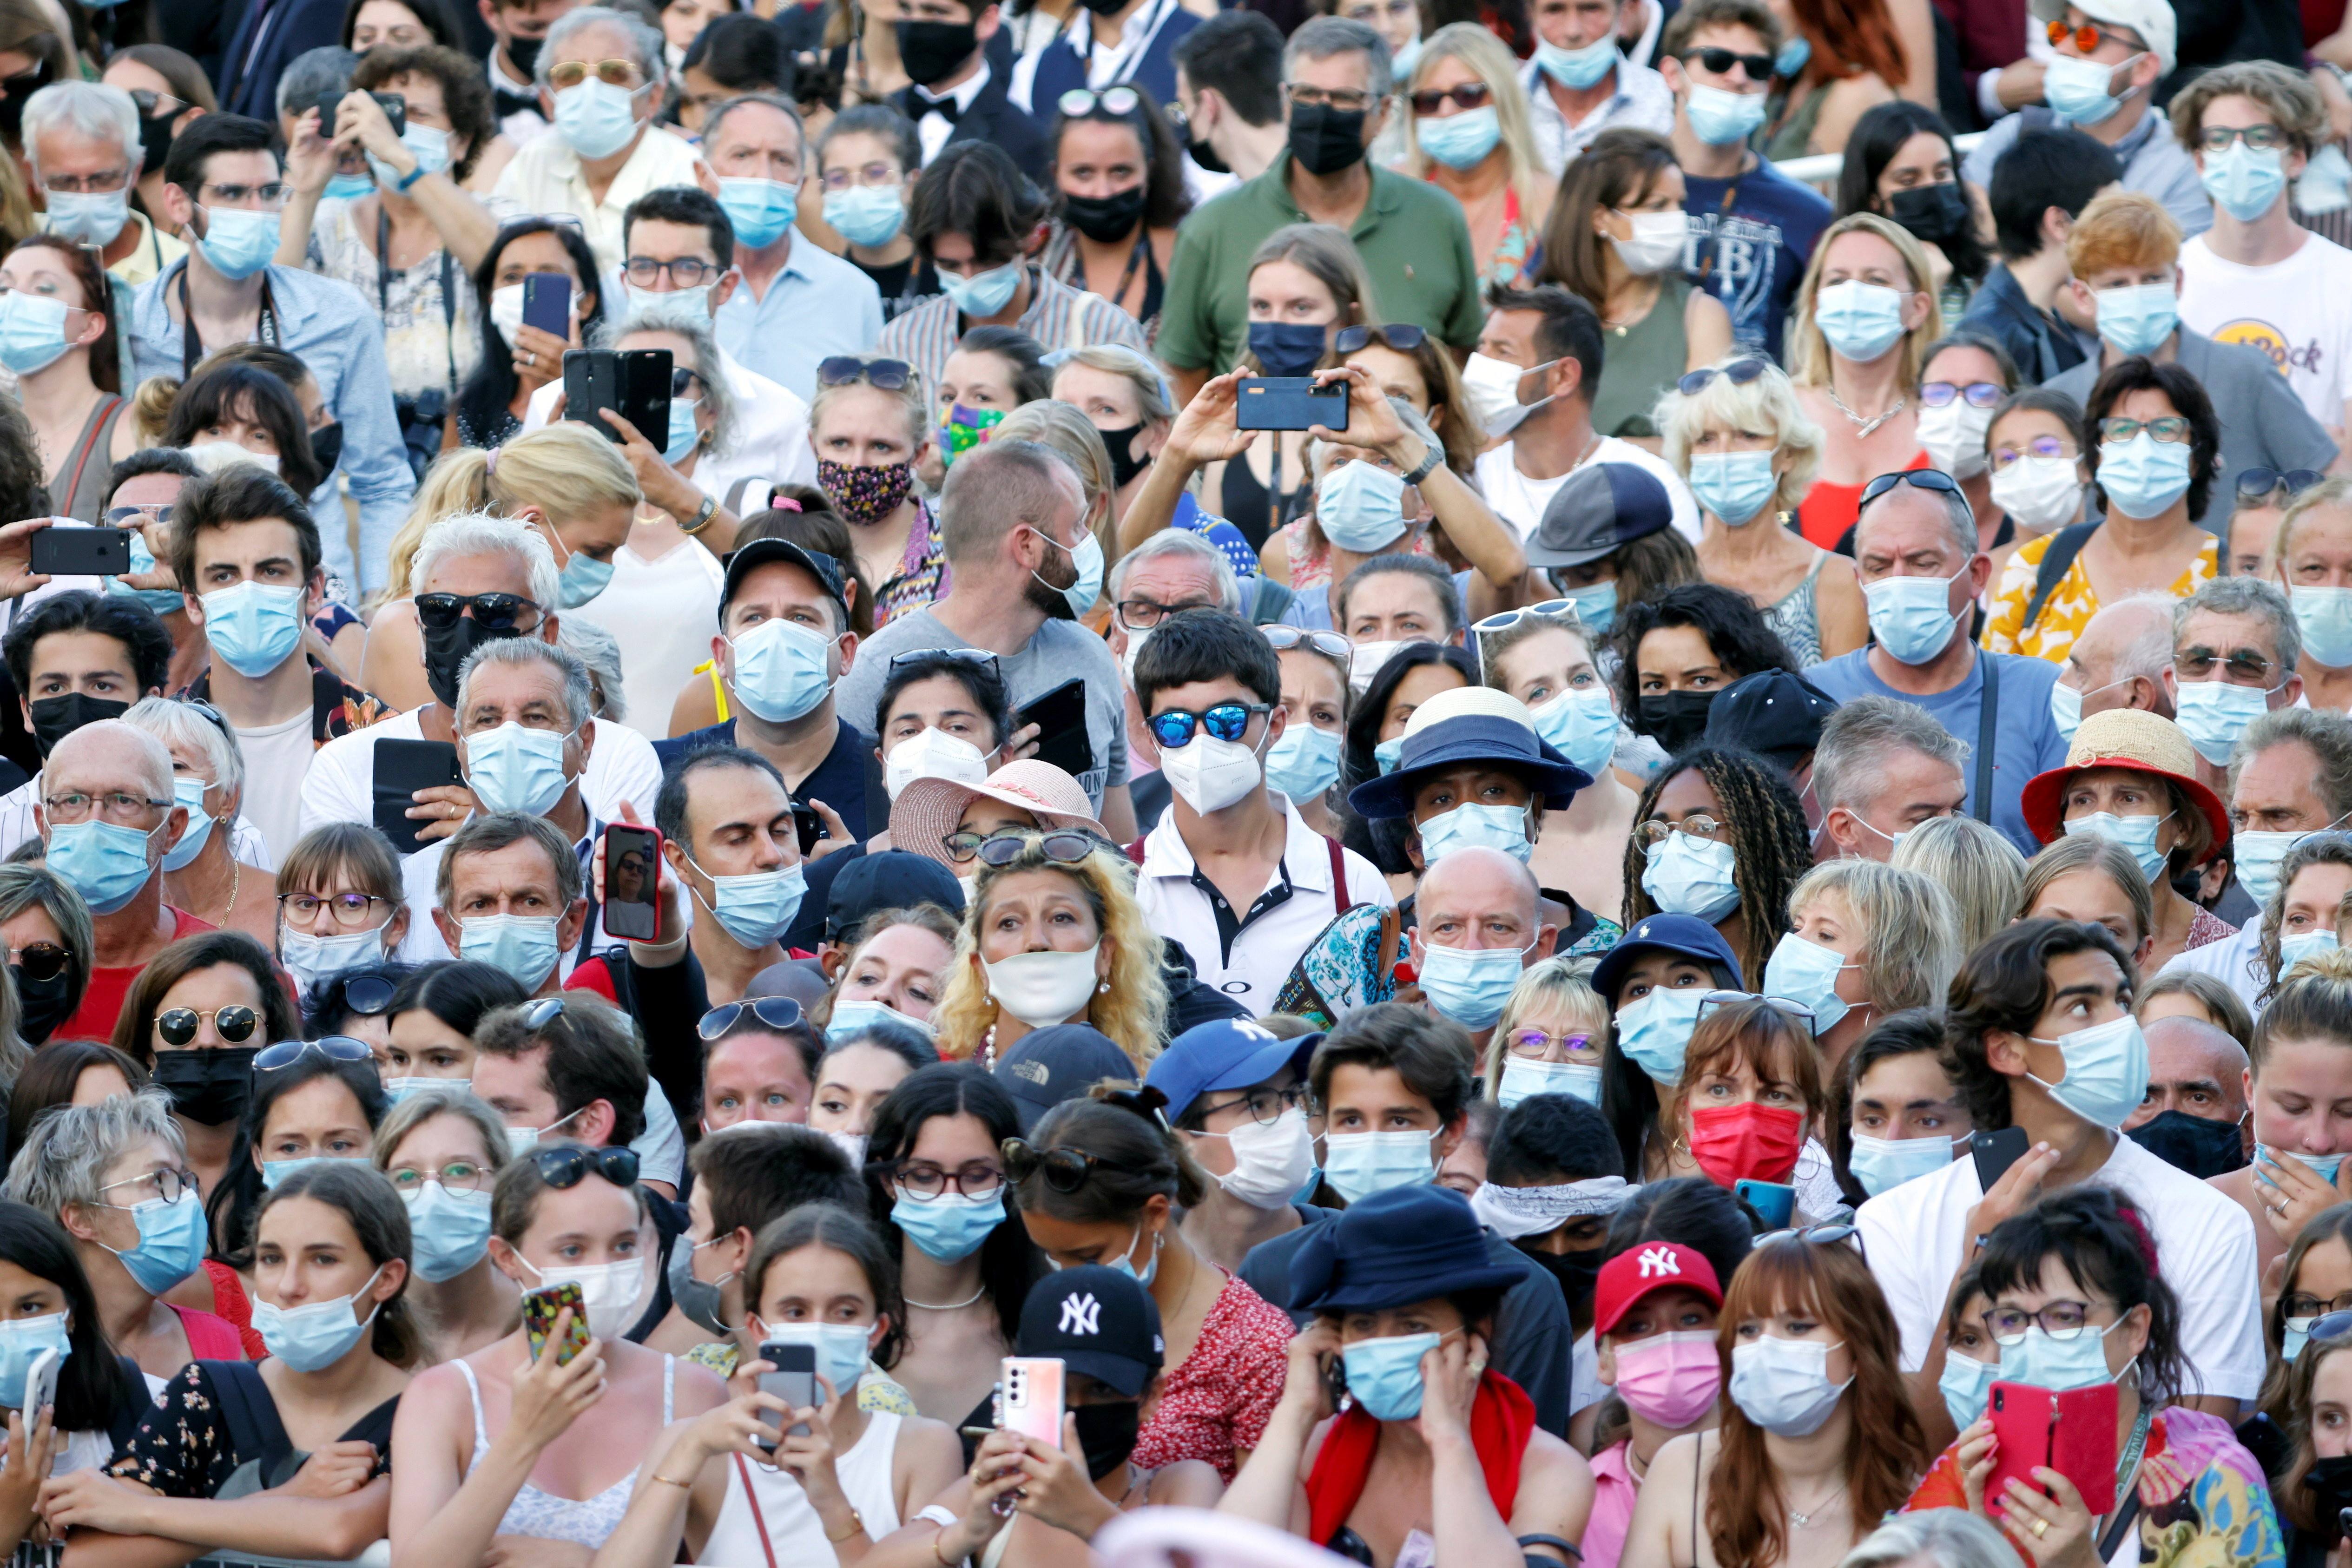 """The 74th Cannes Film Festival - Closing ceremony and screening of the film """"OSS 117: Alerte Rouge en Afrique Noire"""" (OSS 117: From Africa with Love) out of competition - Red Carpet Arrivals - Cannes, France, July 17, 2021. Cinema fans wearing protective face masks watch guests' arrivals. REUTERS/Eric Gaillard     TPX IMAGES OF THE DAY - UP1EH7H1B8ILH"""